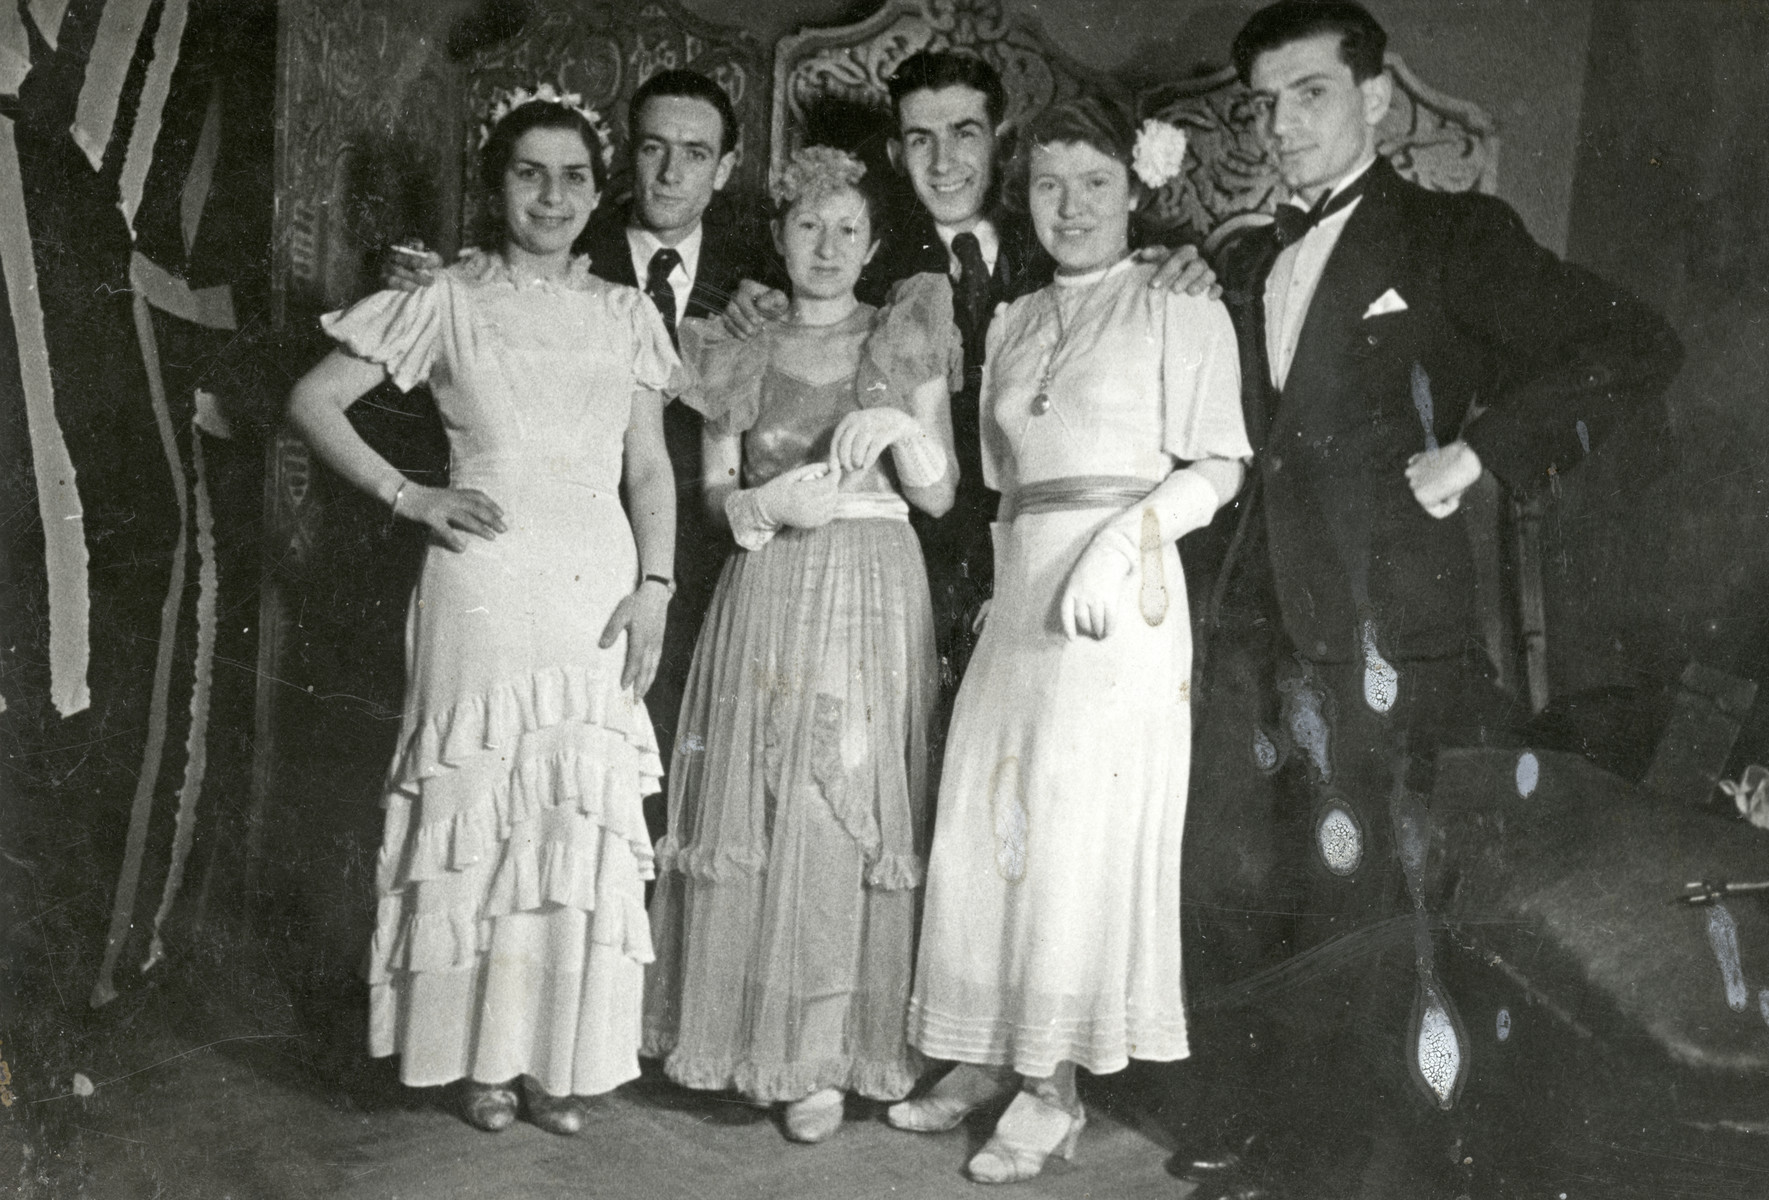 Jewish youth attend a Purim party in prewar Split.  Tina Hajon stands in the bottom row furthest to the right,